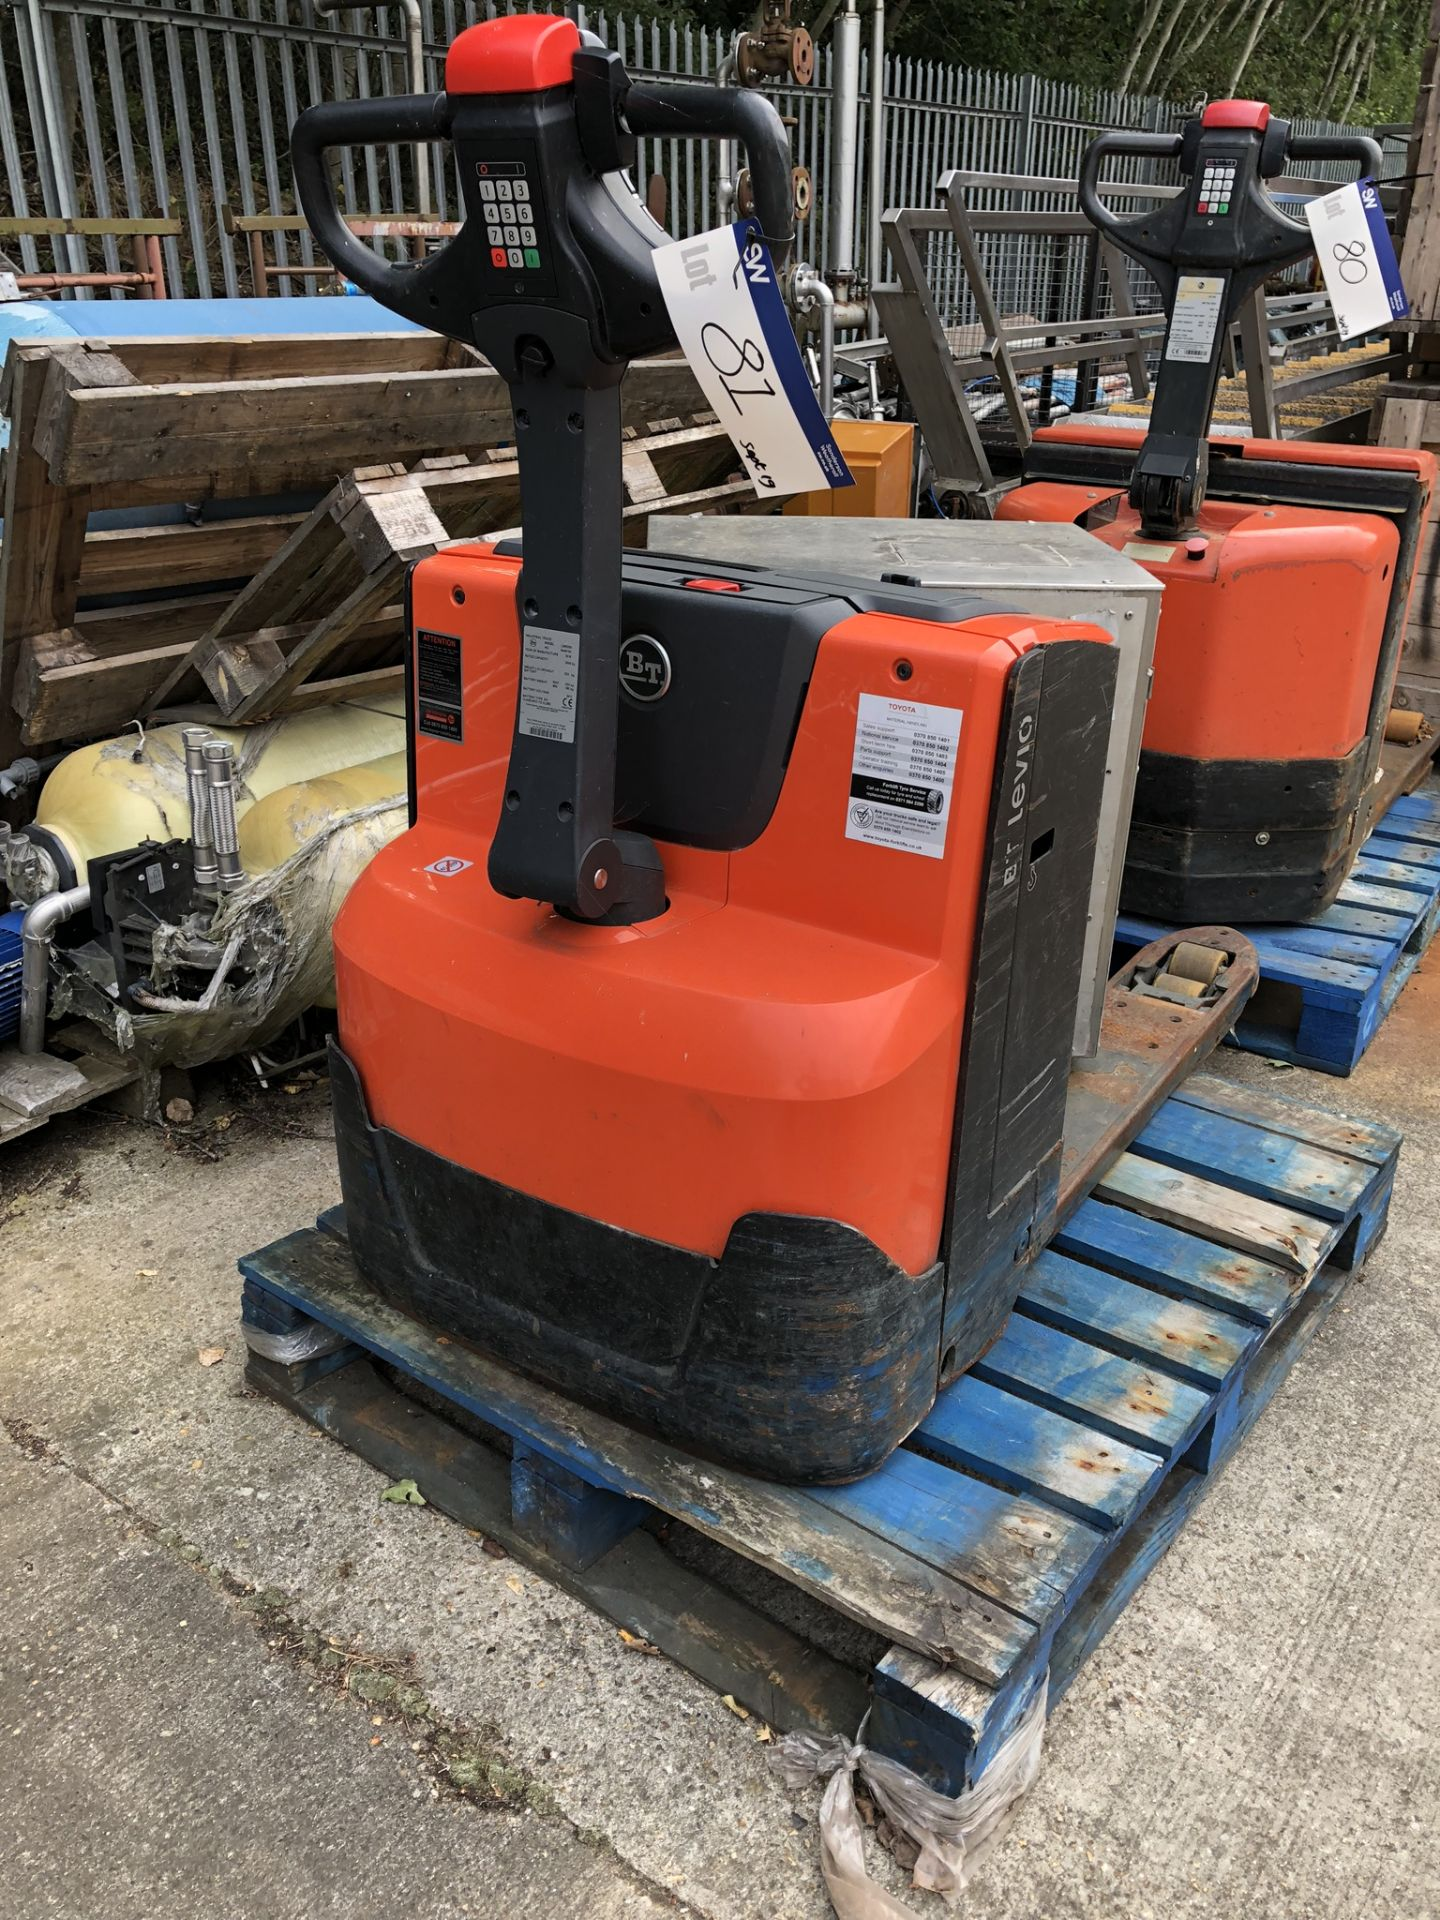 Lot 81 - BT LWE200 2000KG ELECTRIC PALLET TRUCK, serial no 7449191, year of manufacture 2016, lift out charge